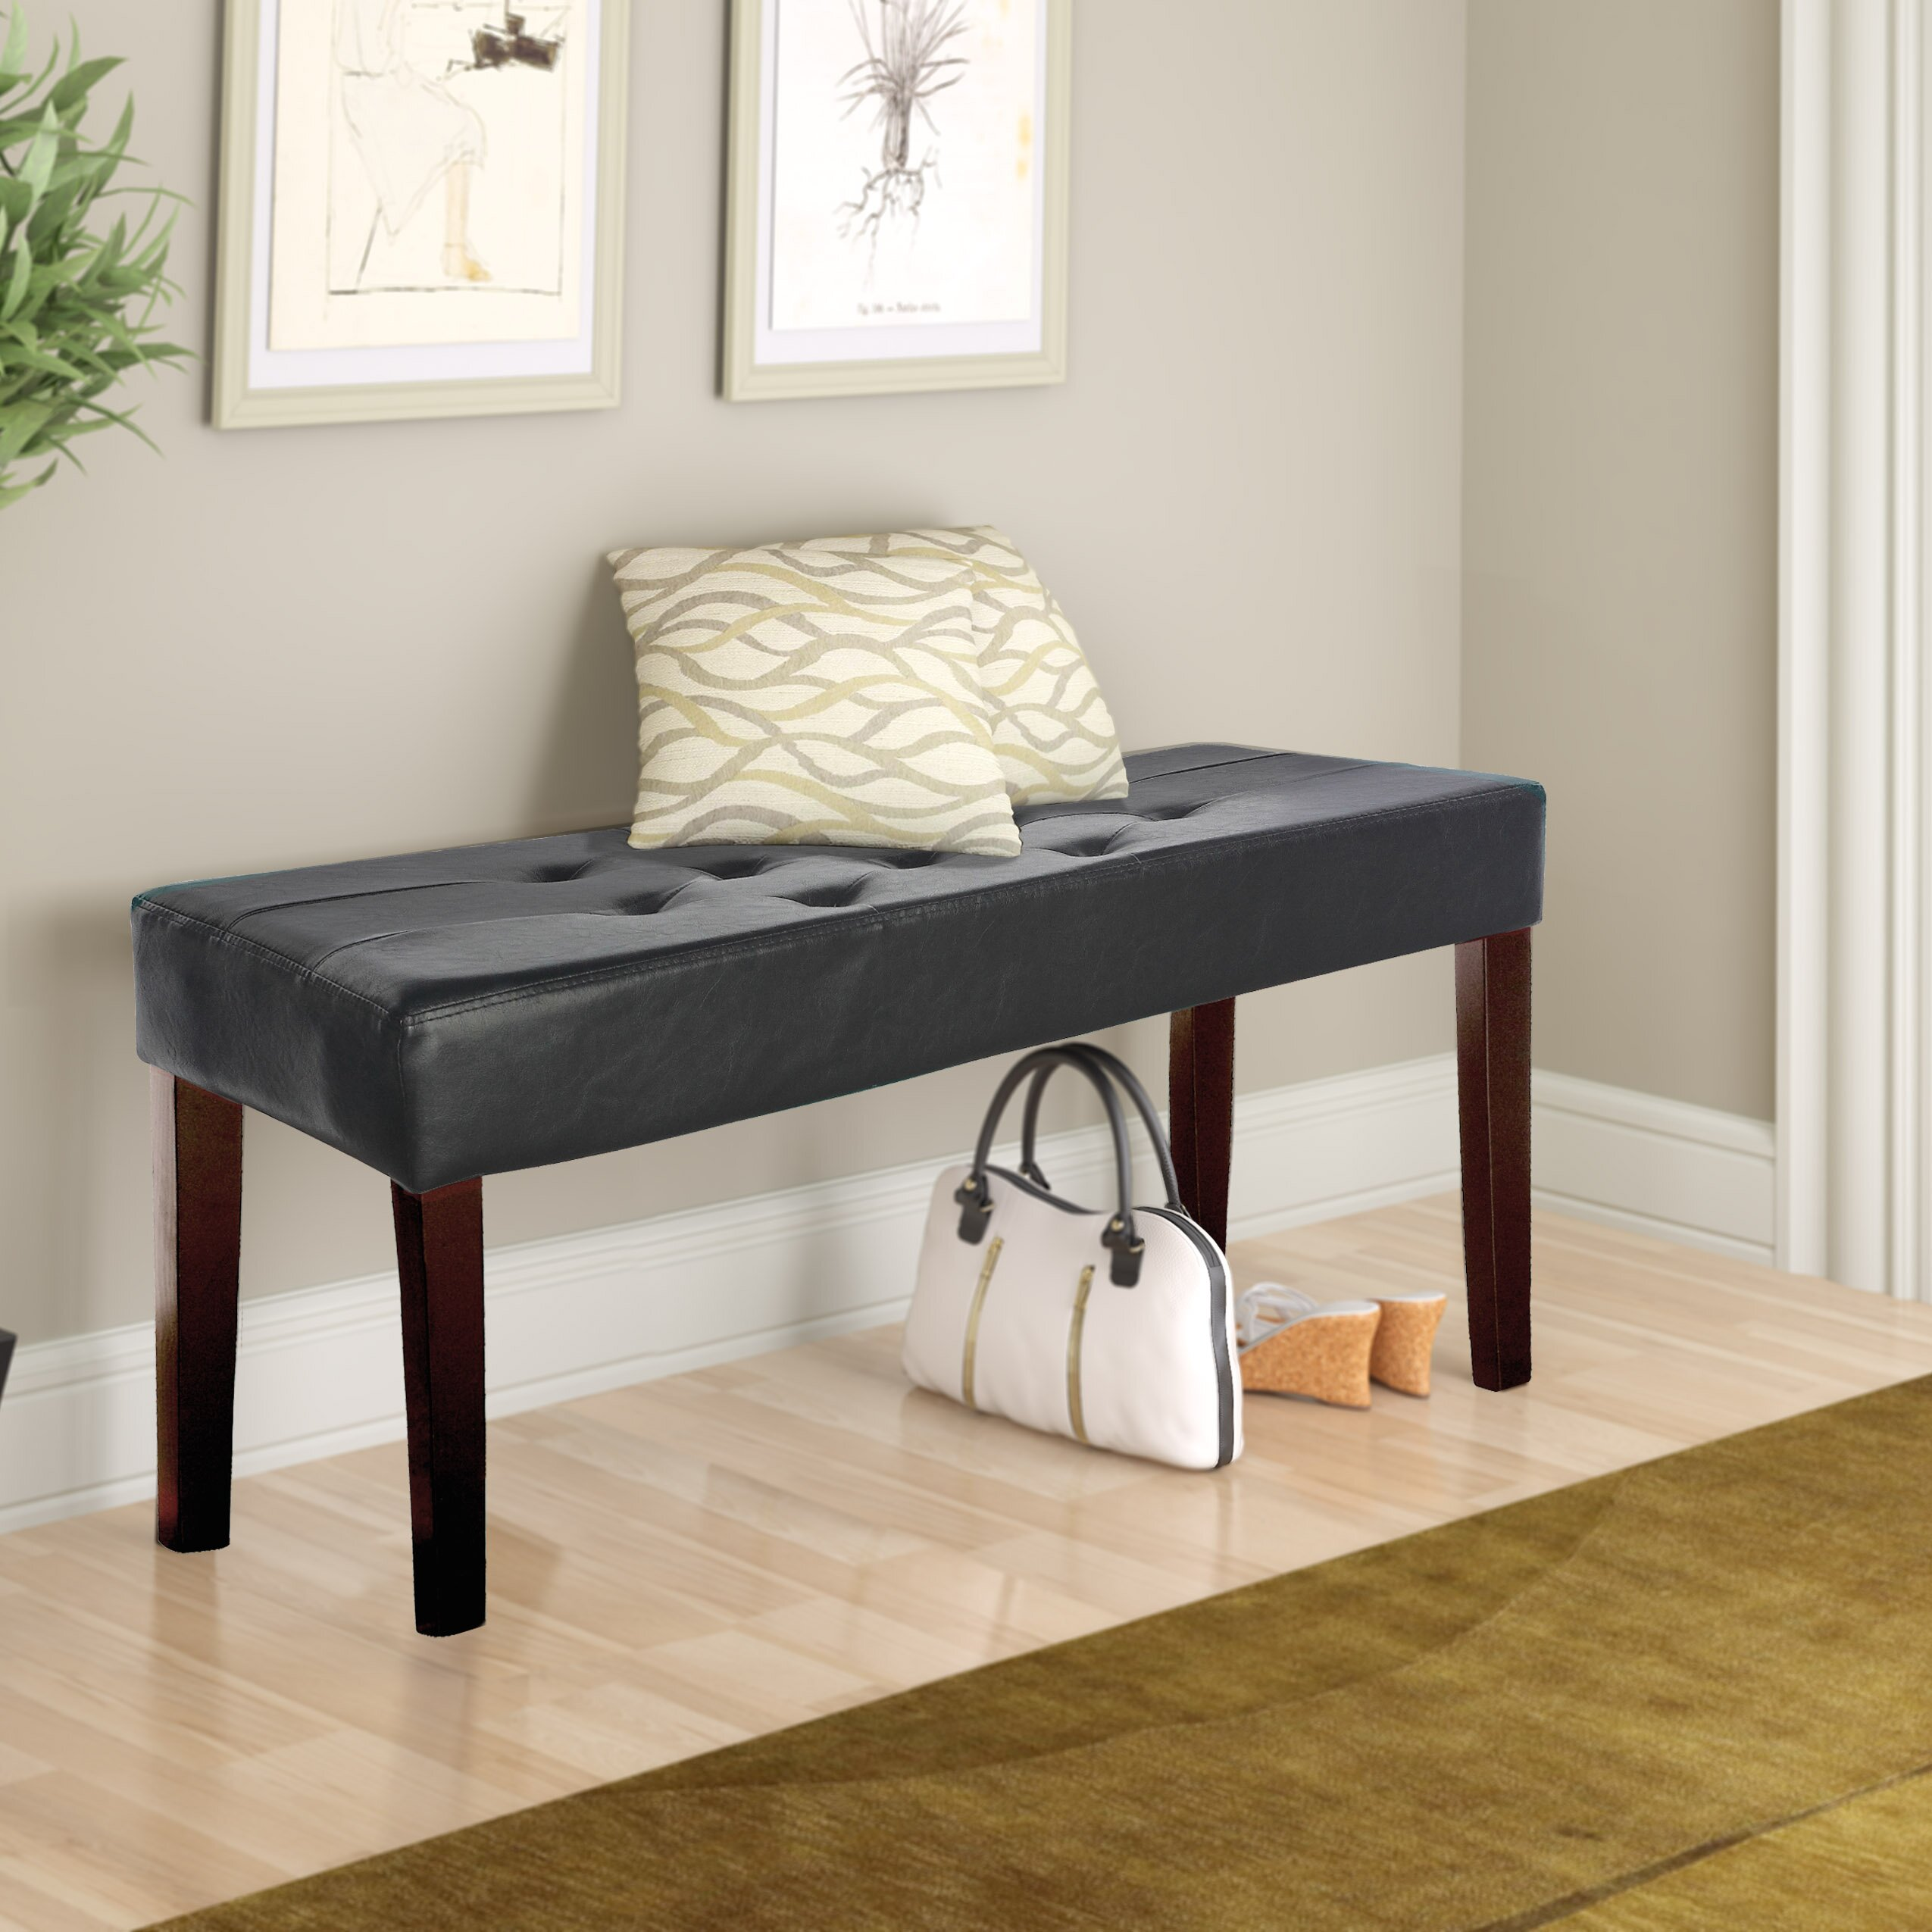 Upholstered Foyer Bench : Corliving fresno upholstered entryway bench reviews